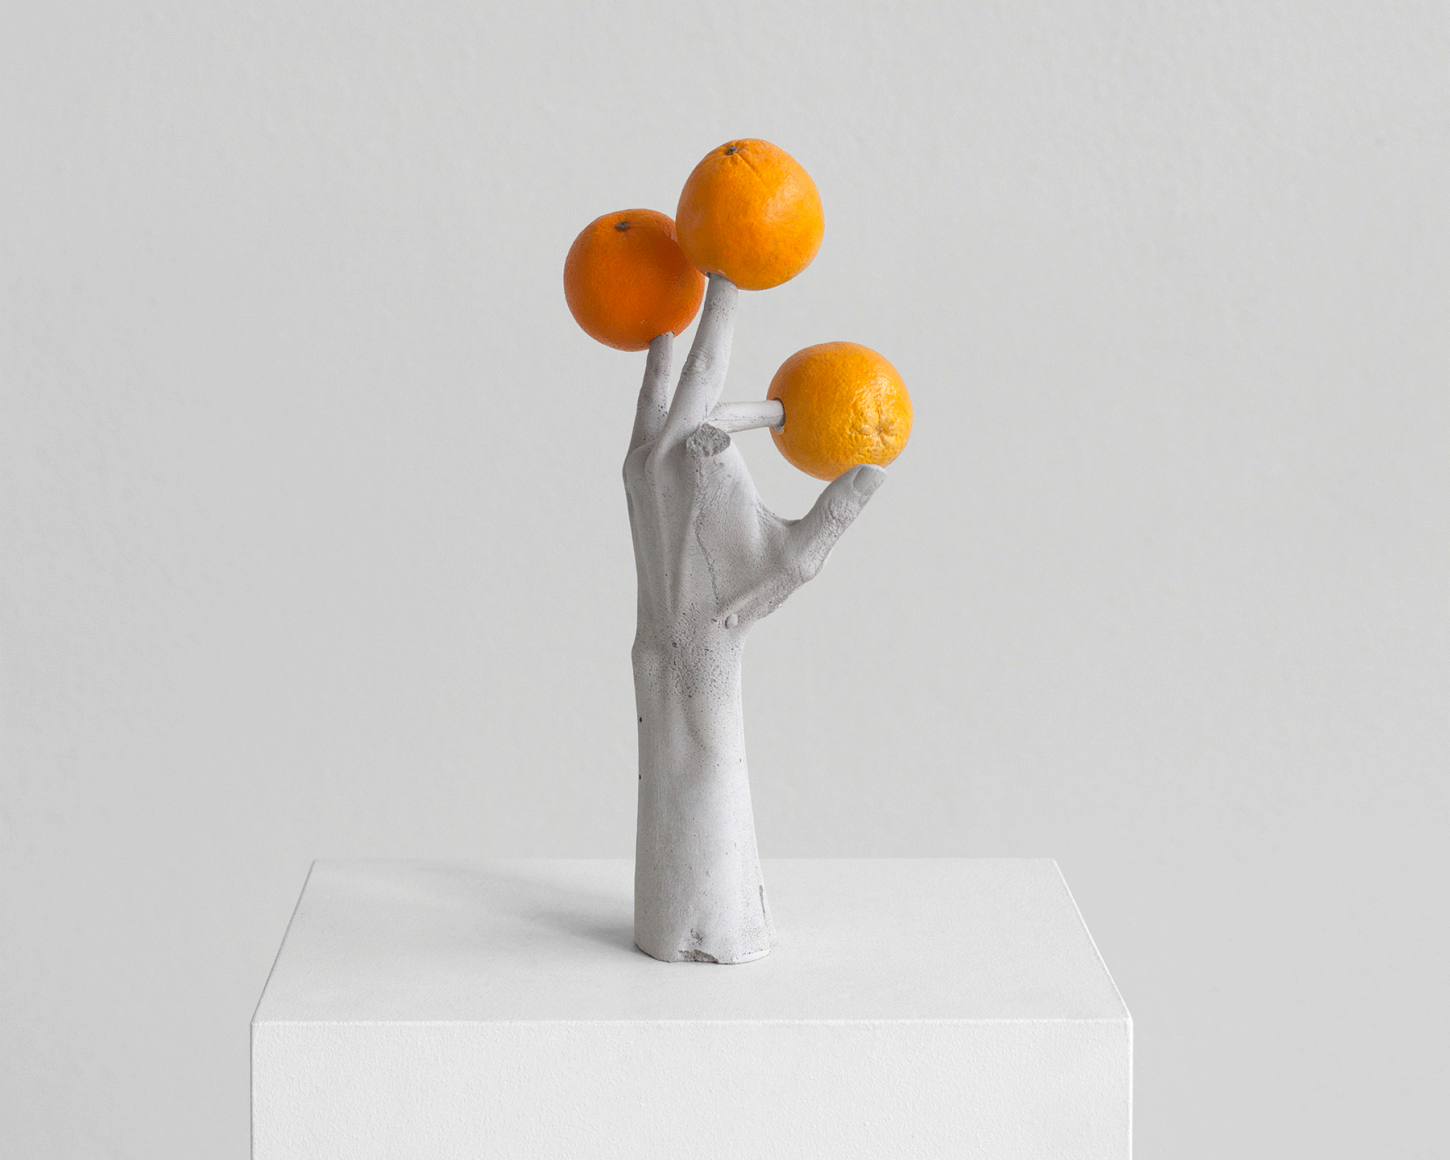 ERWIN WURM, One Minute forever (hands/fruits), 2019